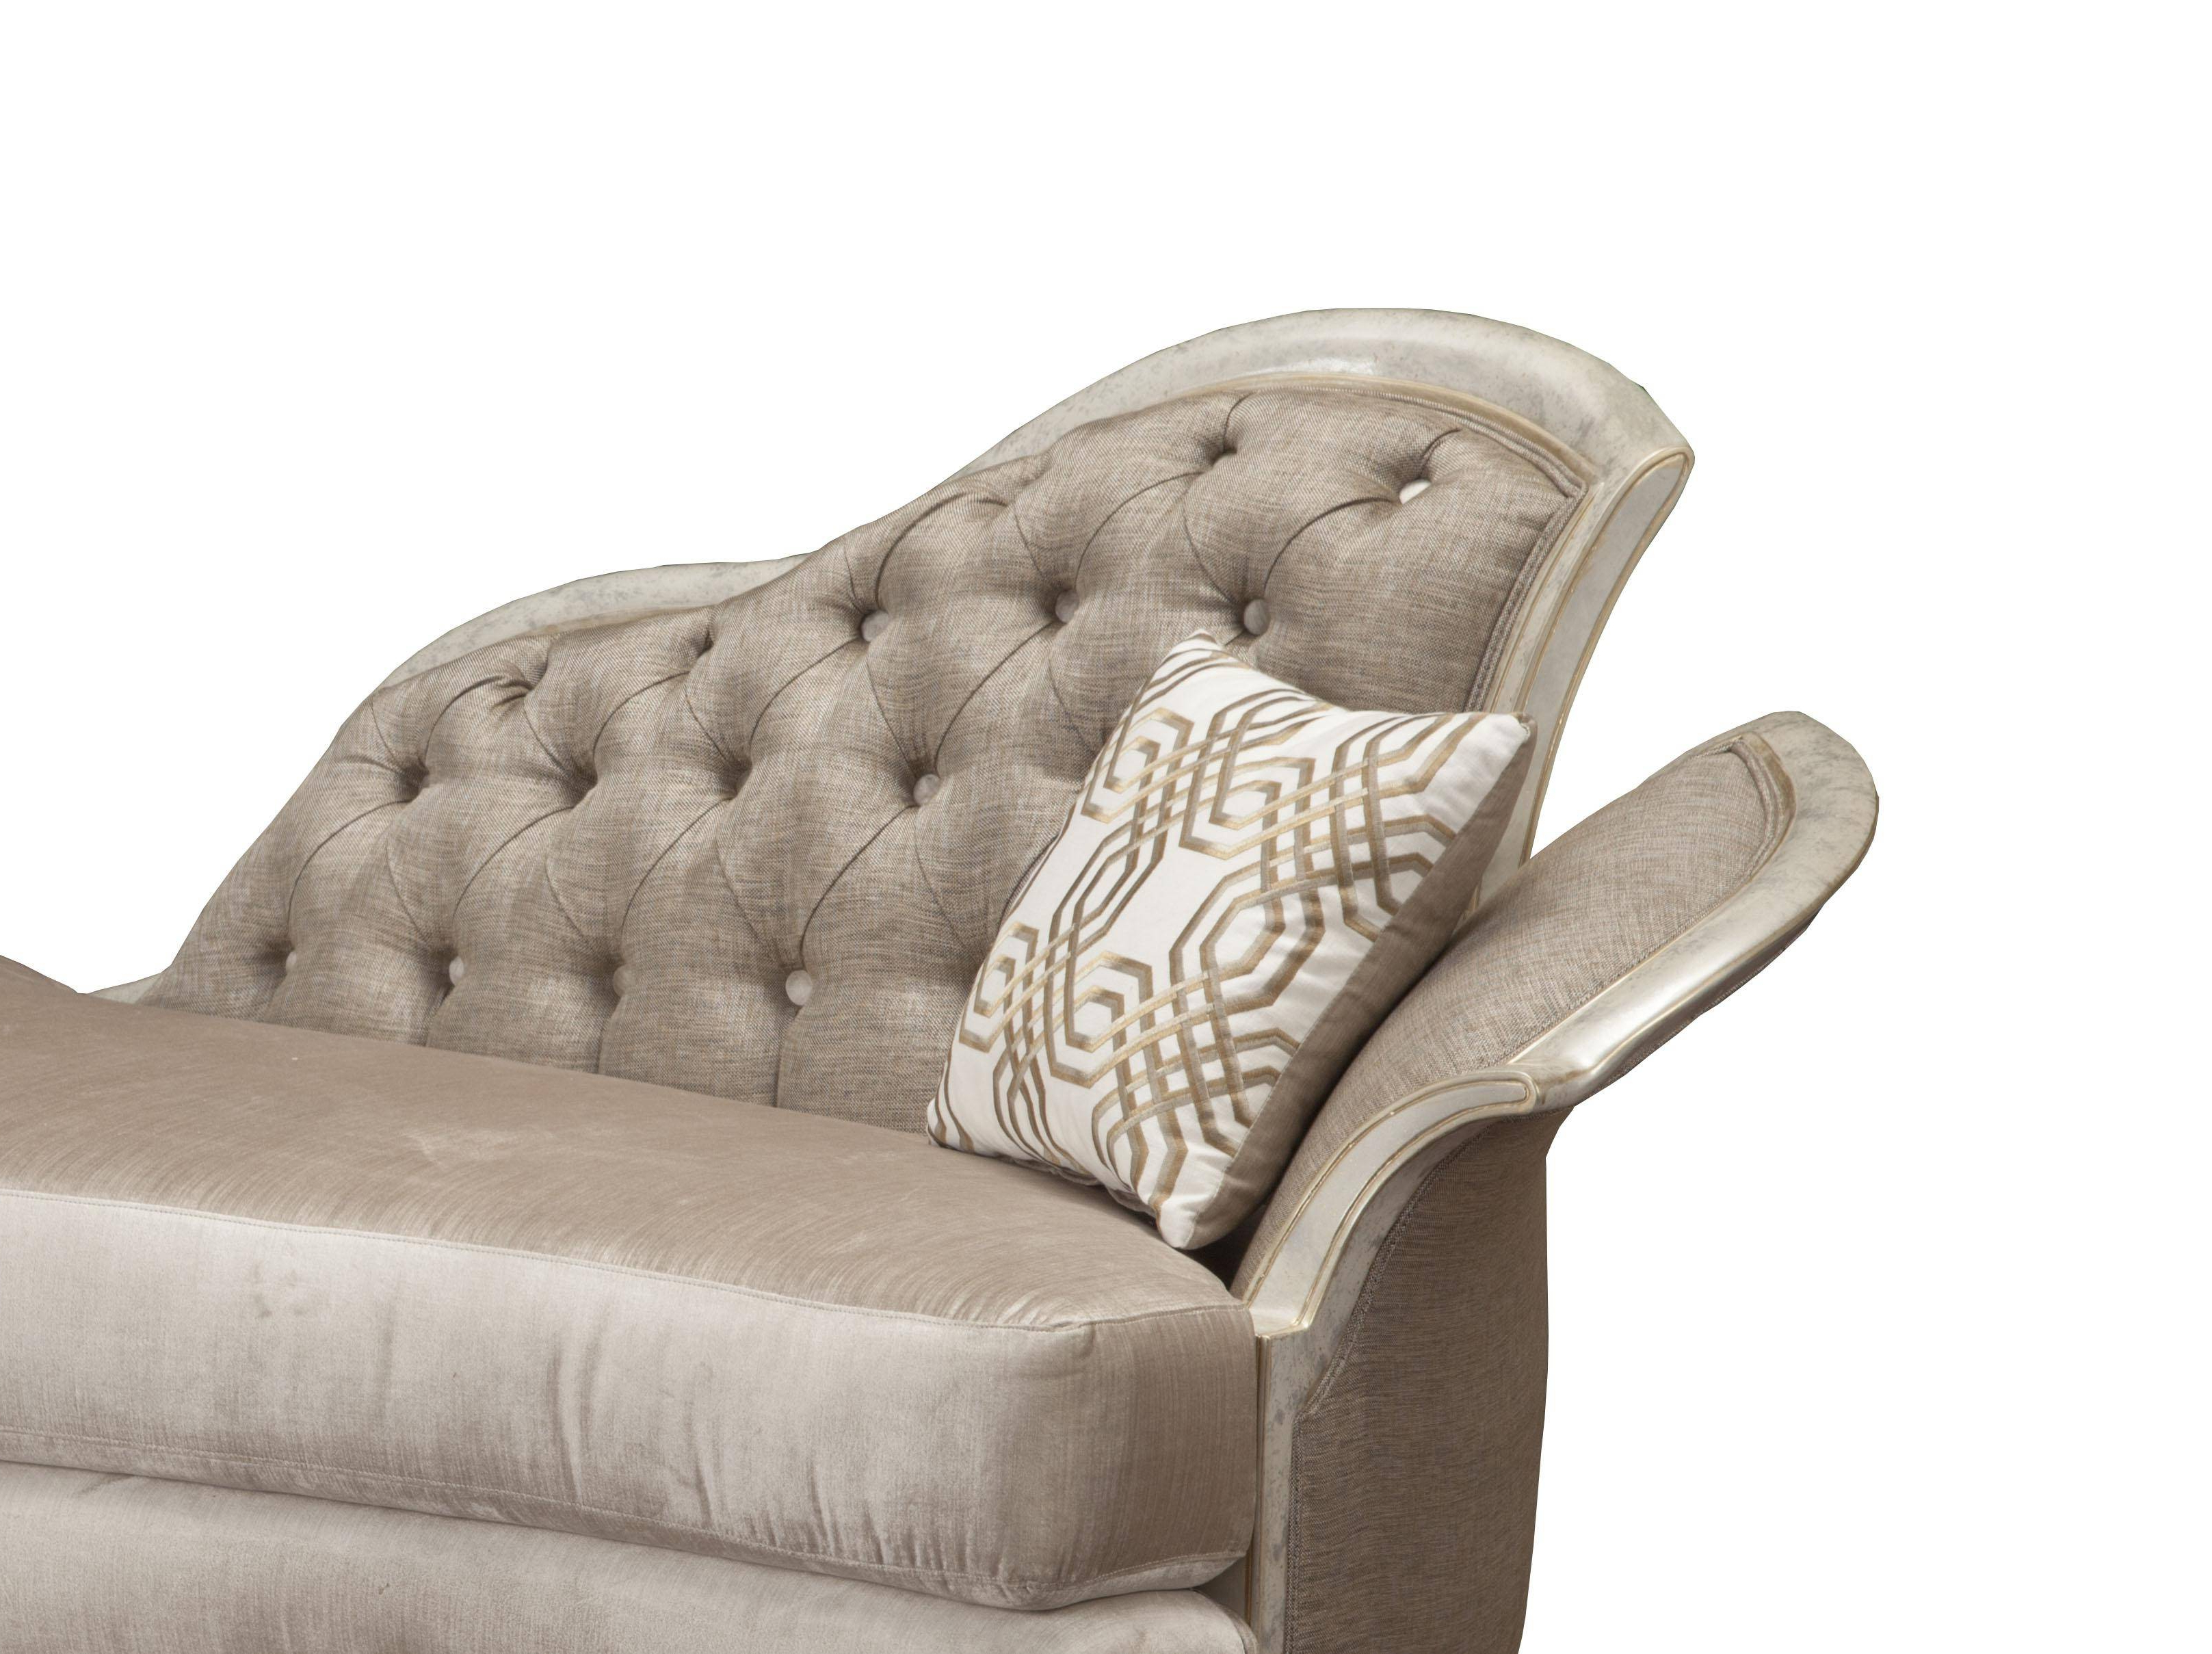 Benetti's Perlita Luxury Beige Pearl Silk Chenille Silver Gold Chaise Lounge Pertaining To Most Up To Date Pearl Chaise Lounges (View 16 of 25)